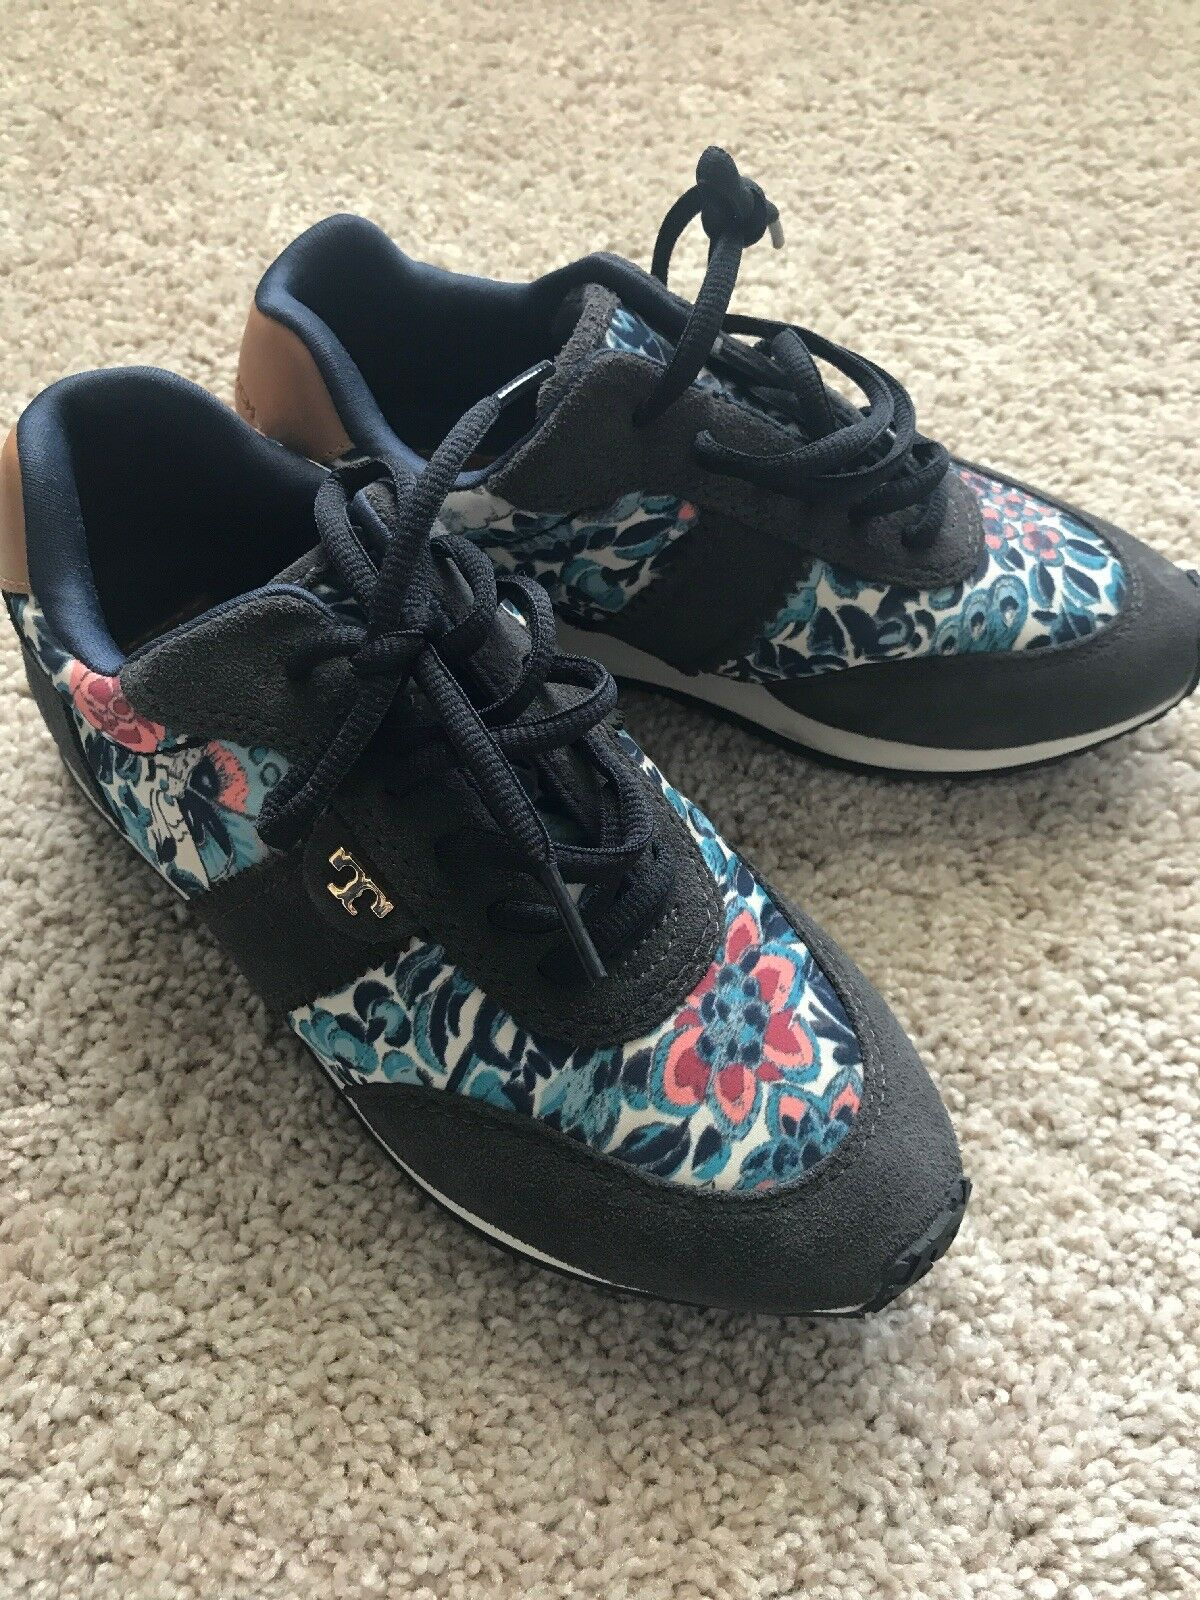 Authentic Tory Burch Floral Sneakers shoes 6